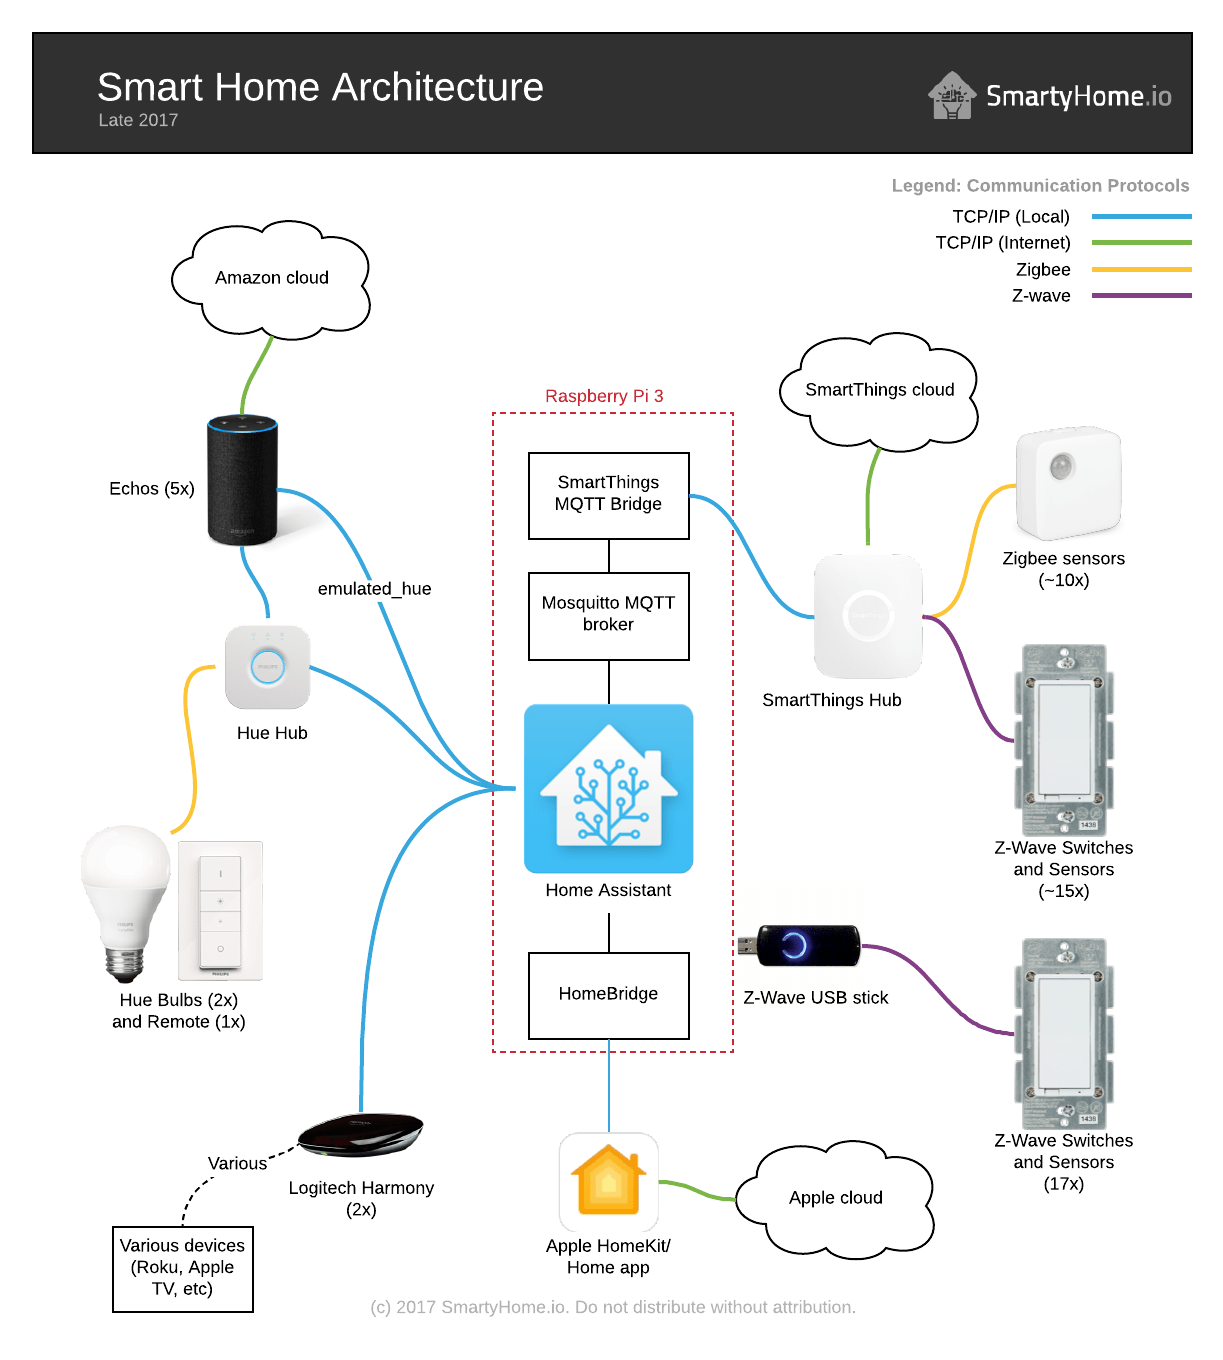 State of my smart home late 2017 smartyhome my home automation architecture as of late 2017 ccuart Images